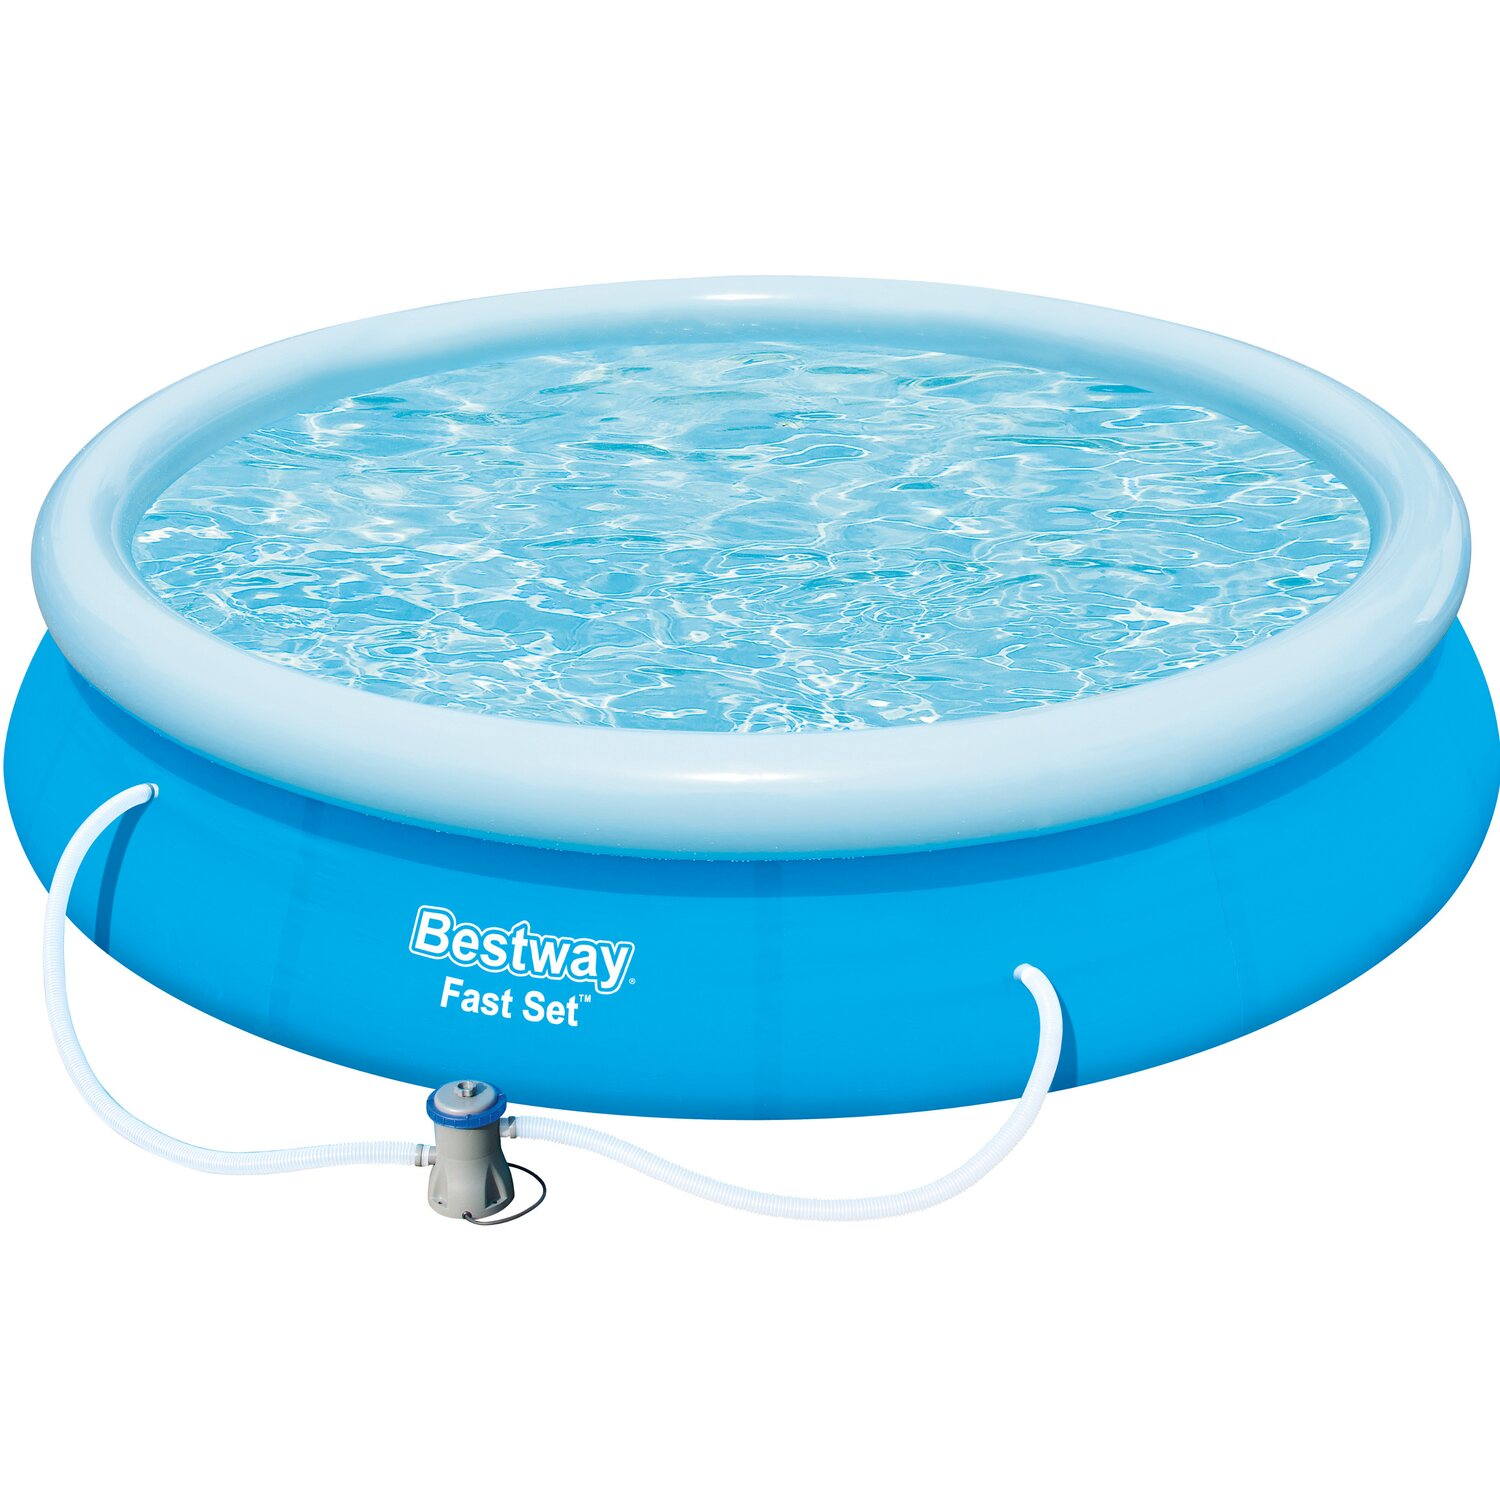 Bestway fast set pool 366 cm x 76 cm kaufen bei obi for Bestway pool bei obi